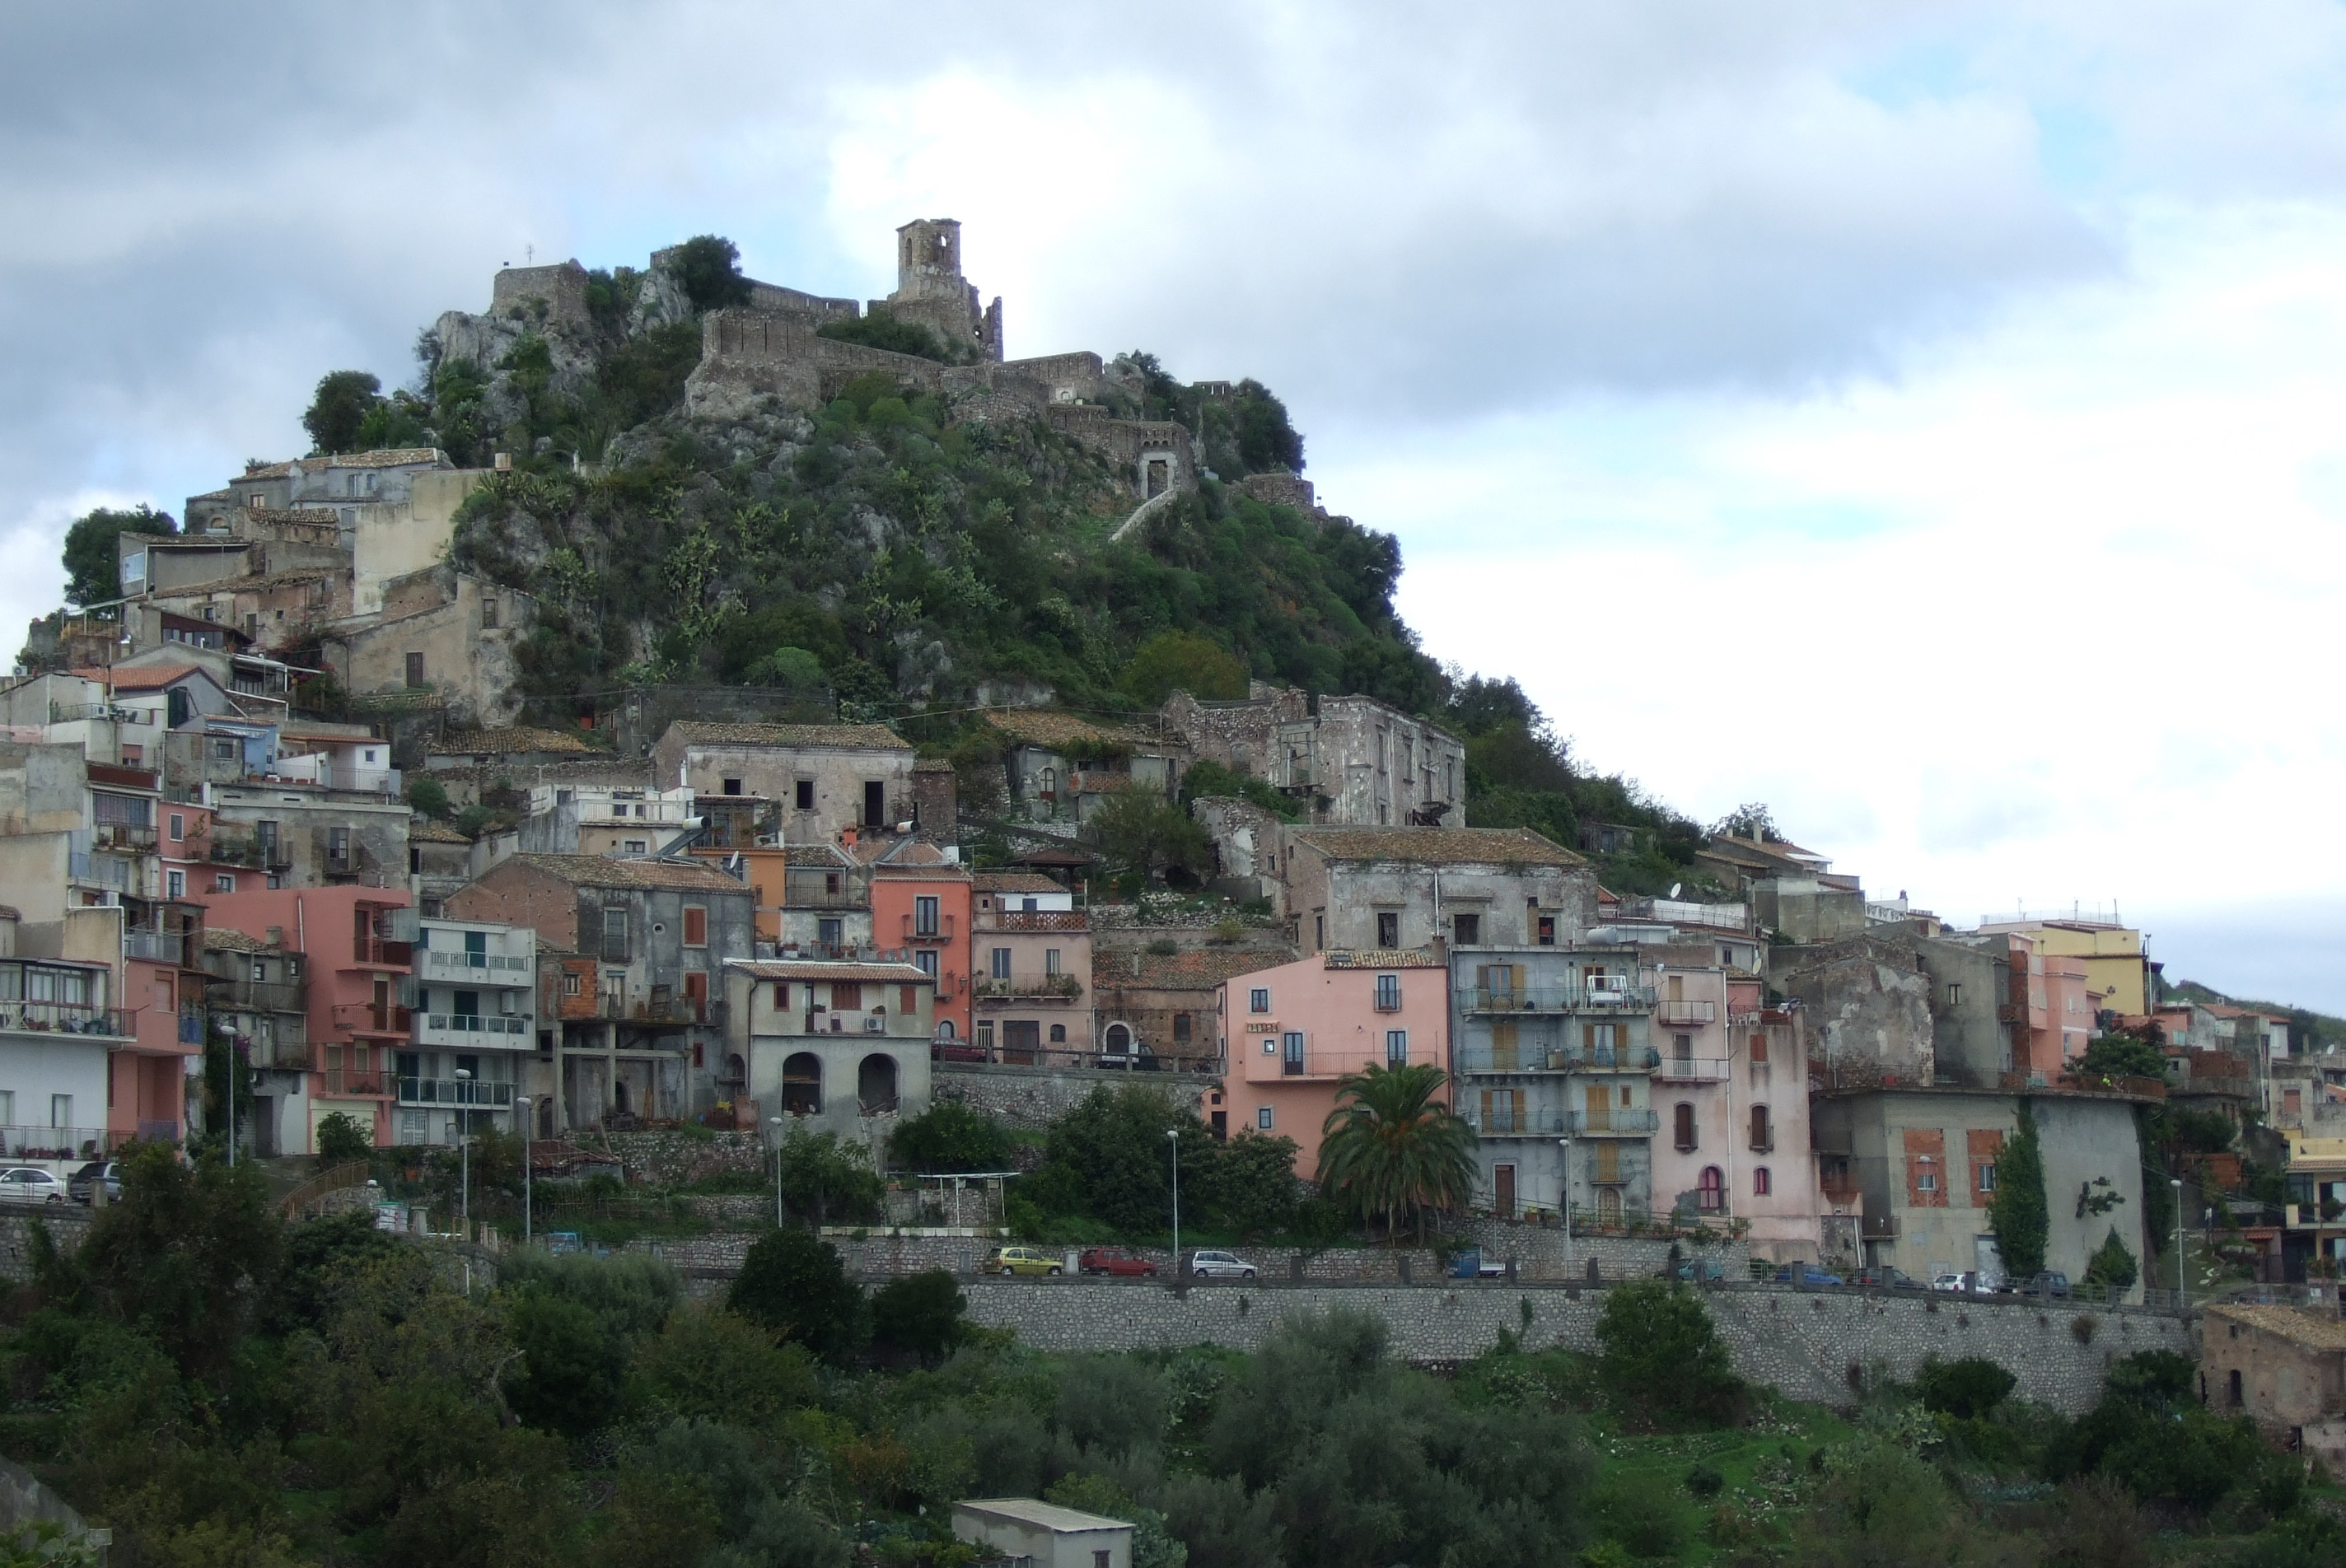 Why Travel to a Small Village in Italy?